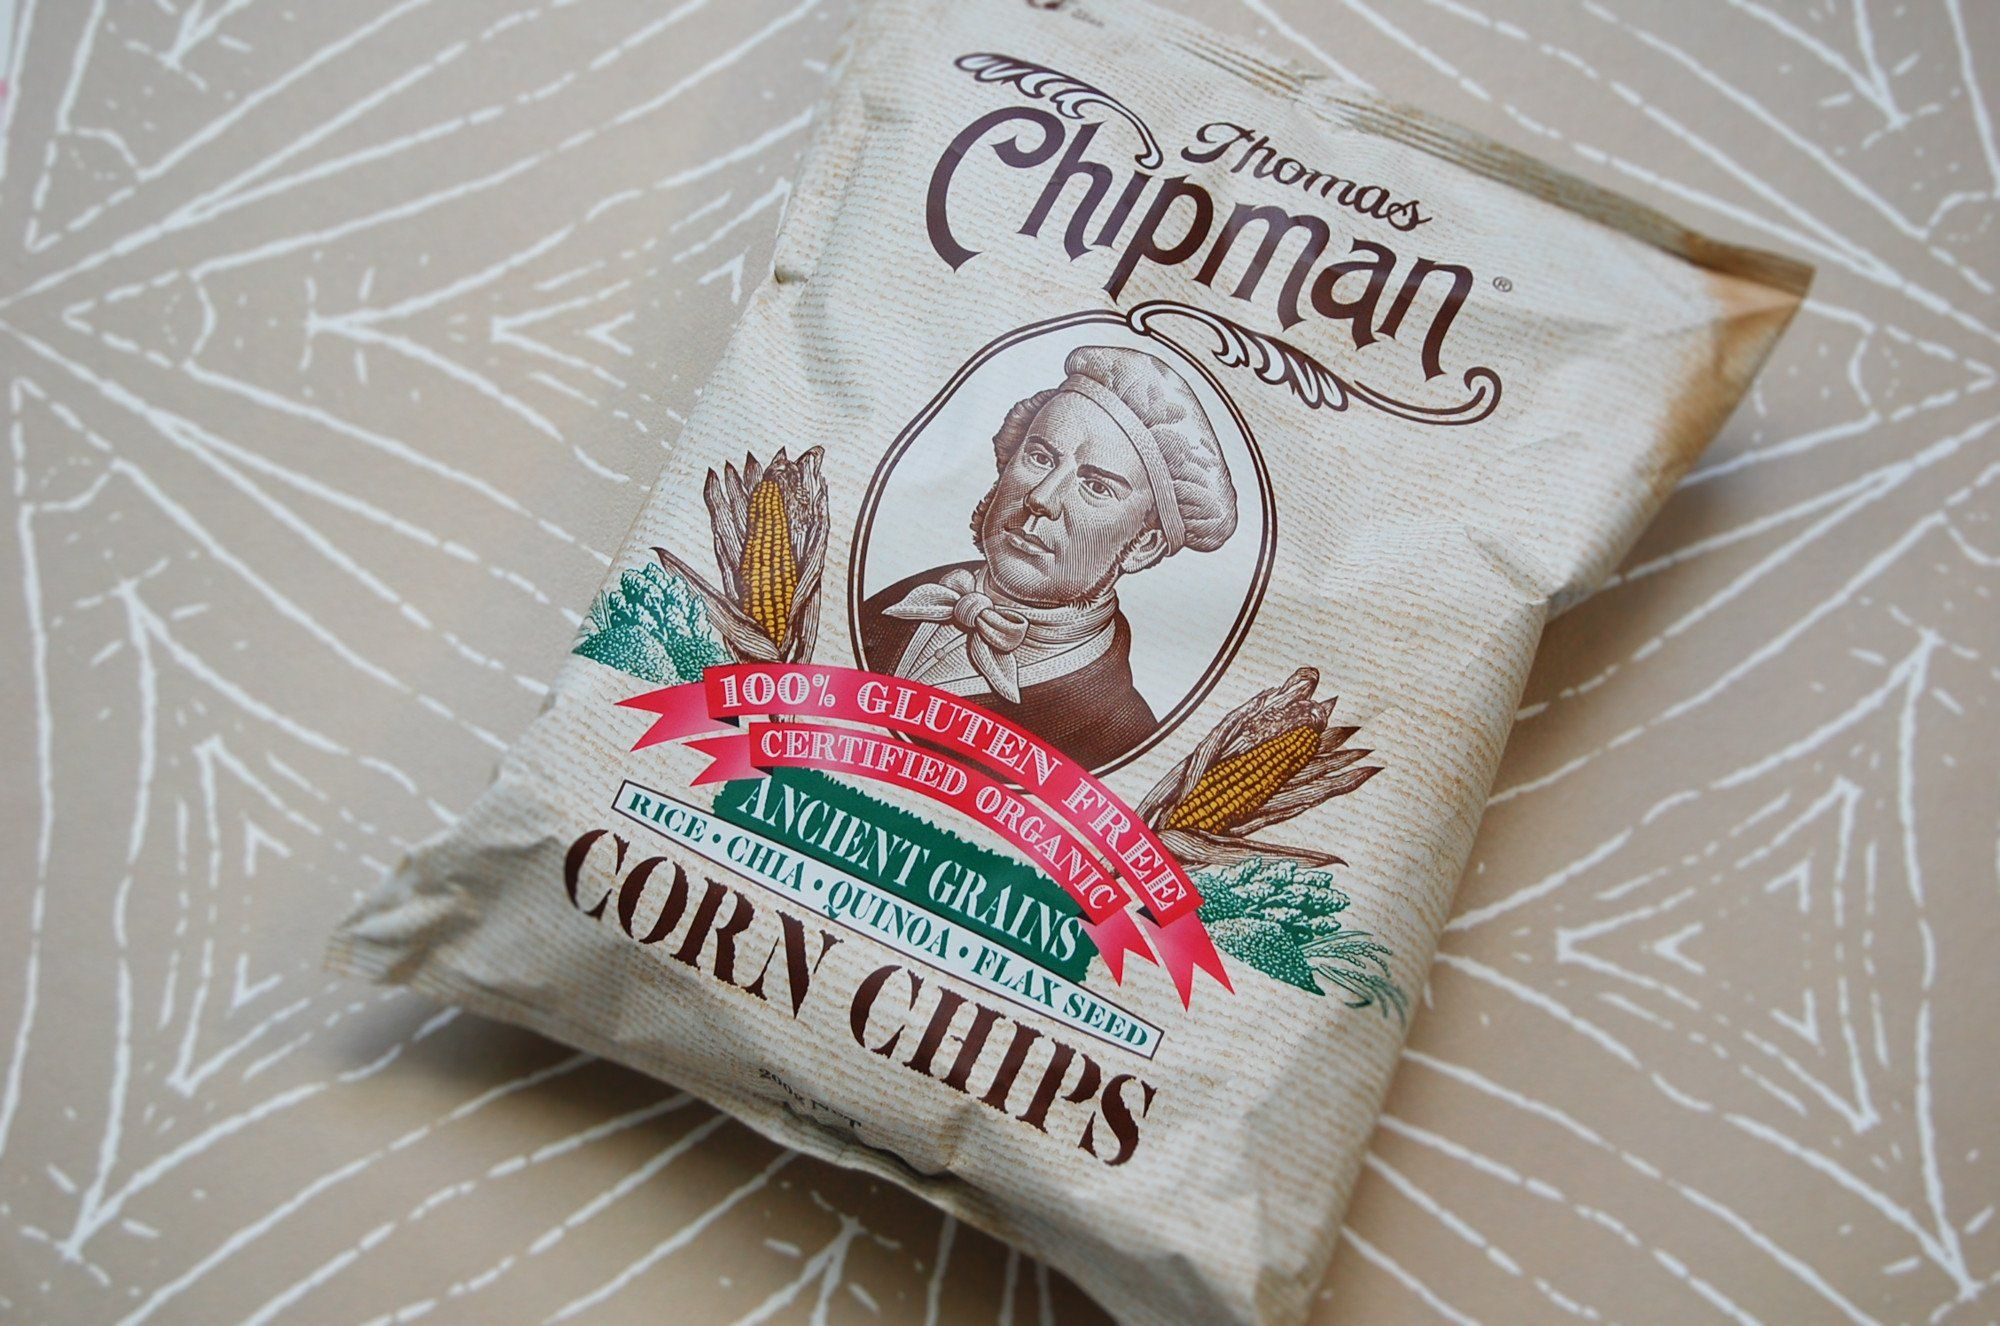 Thomas Chipman, Corn Chips Ancient Grains (200g)